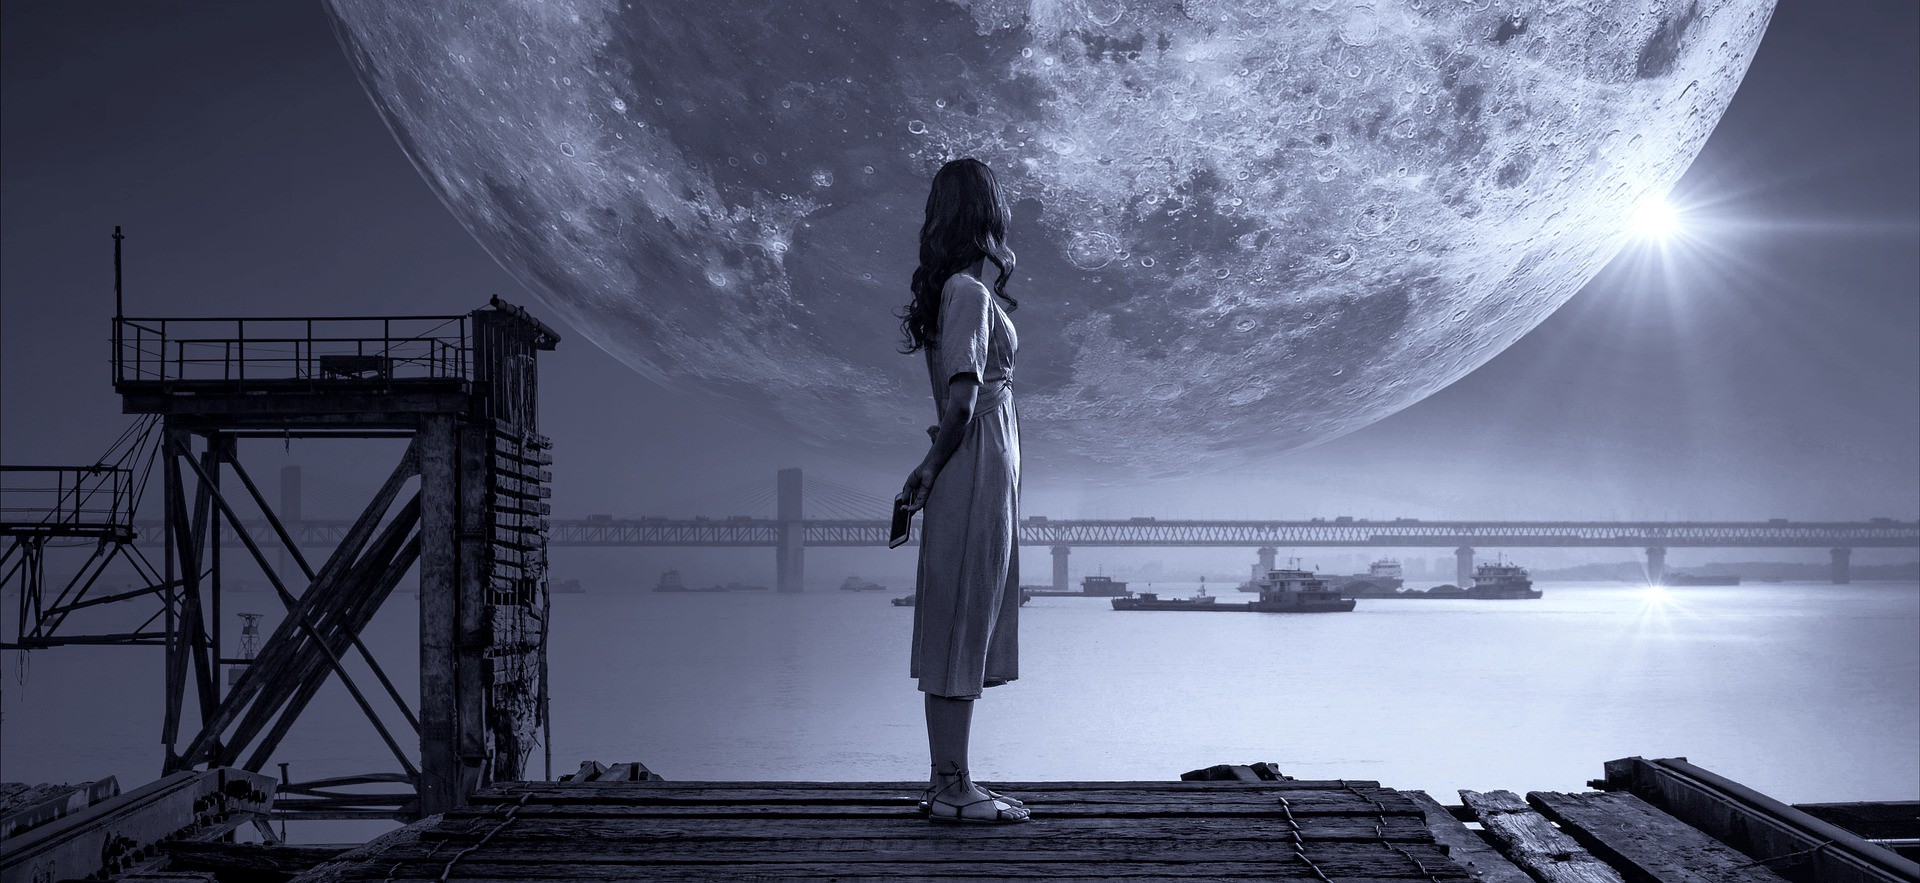 Girl watching moon on a dock at night